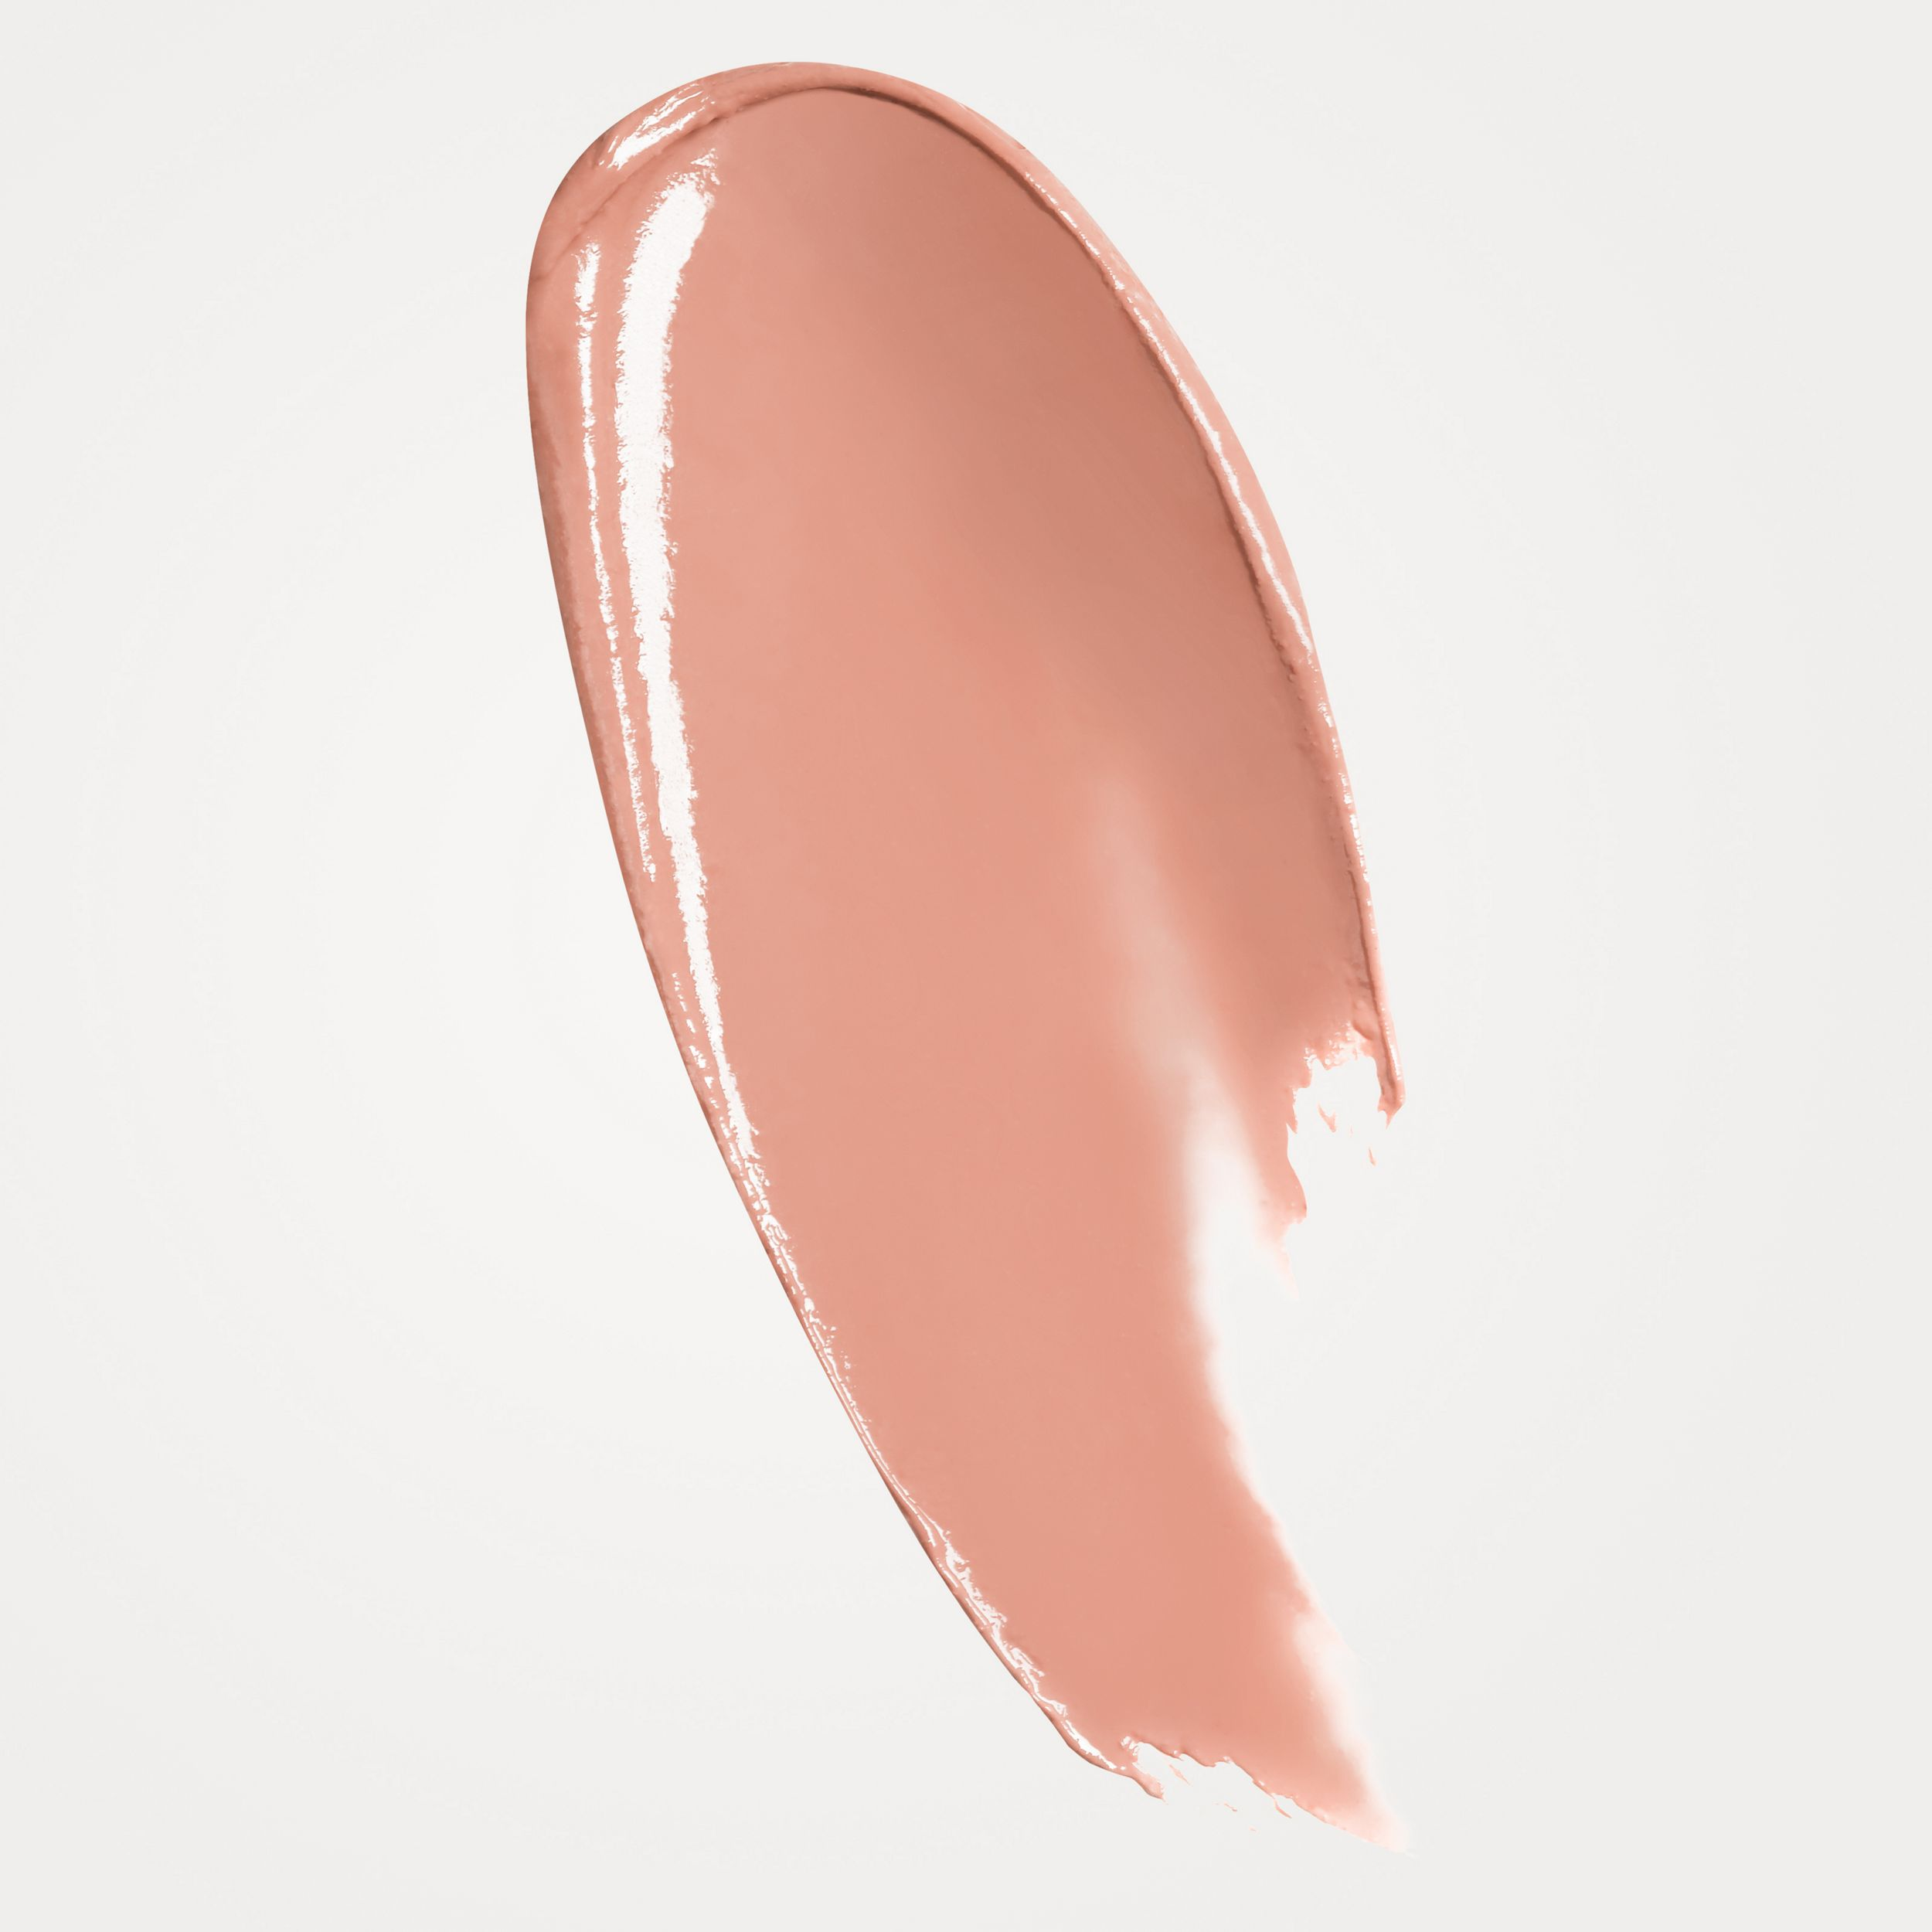 Burberry Full Kisses – Nude Blush No.501 - Women | Burberry Canada - 2